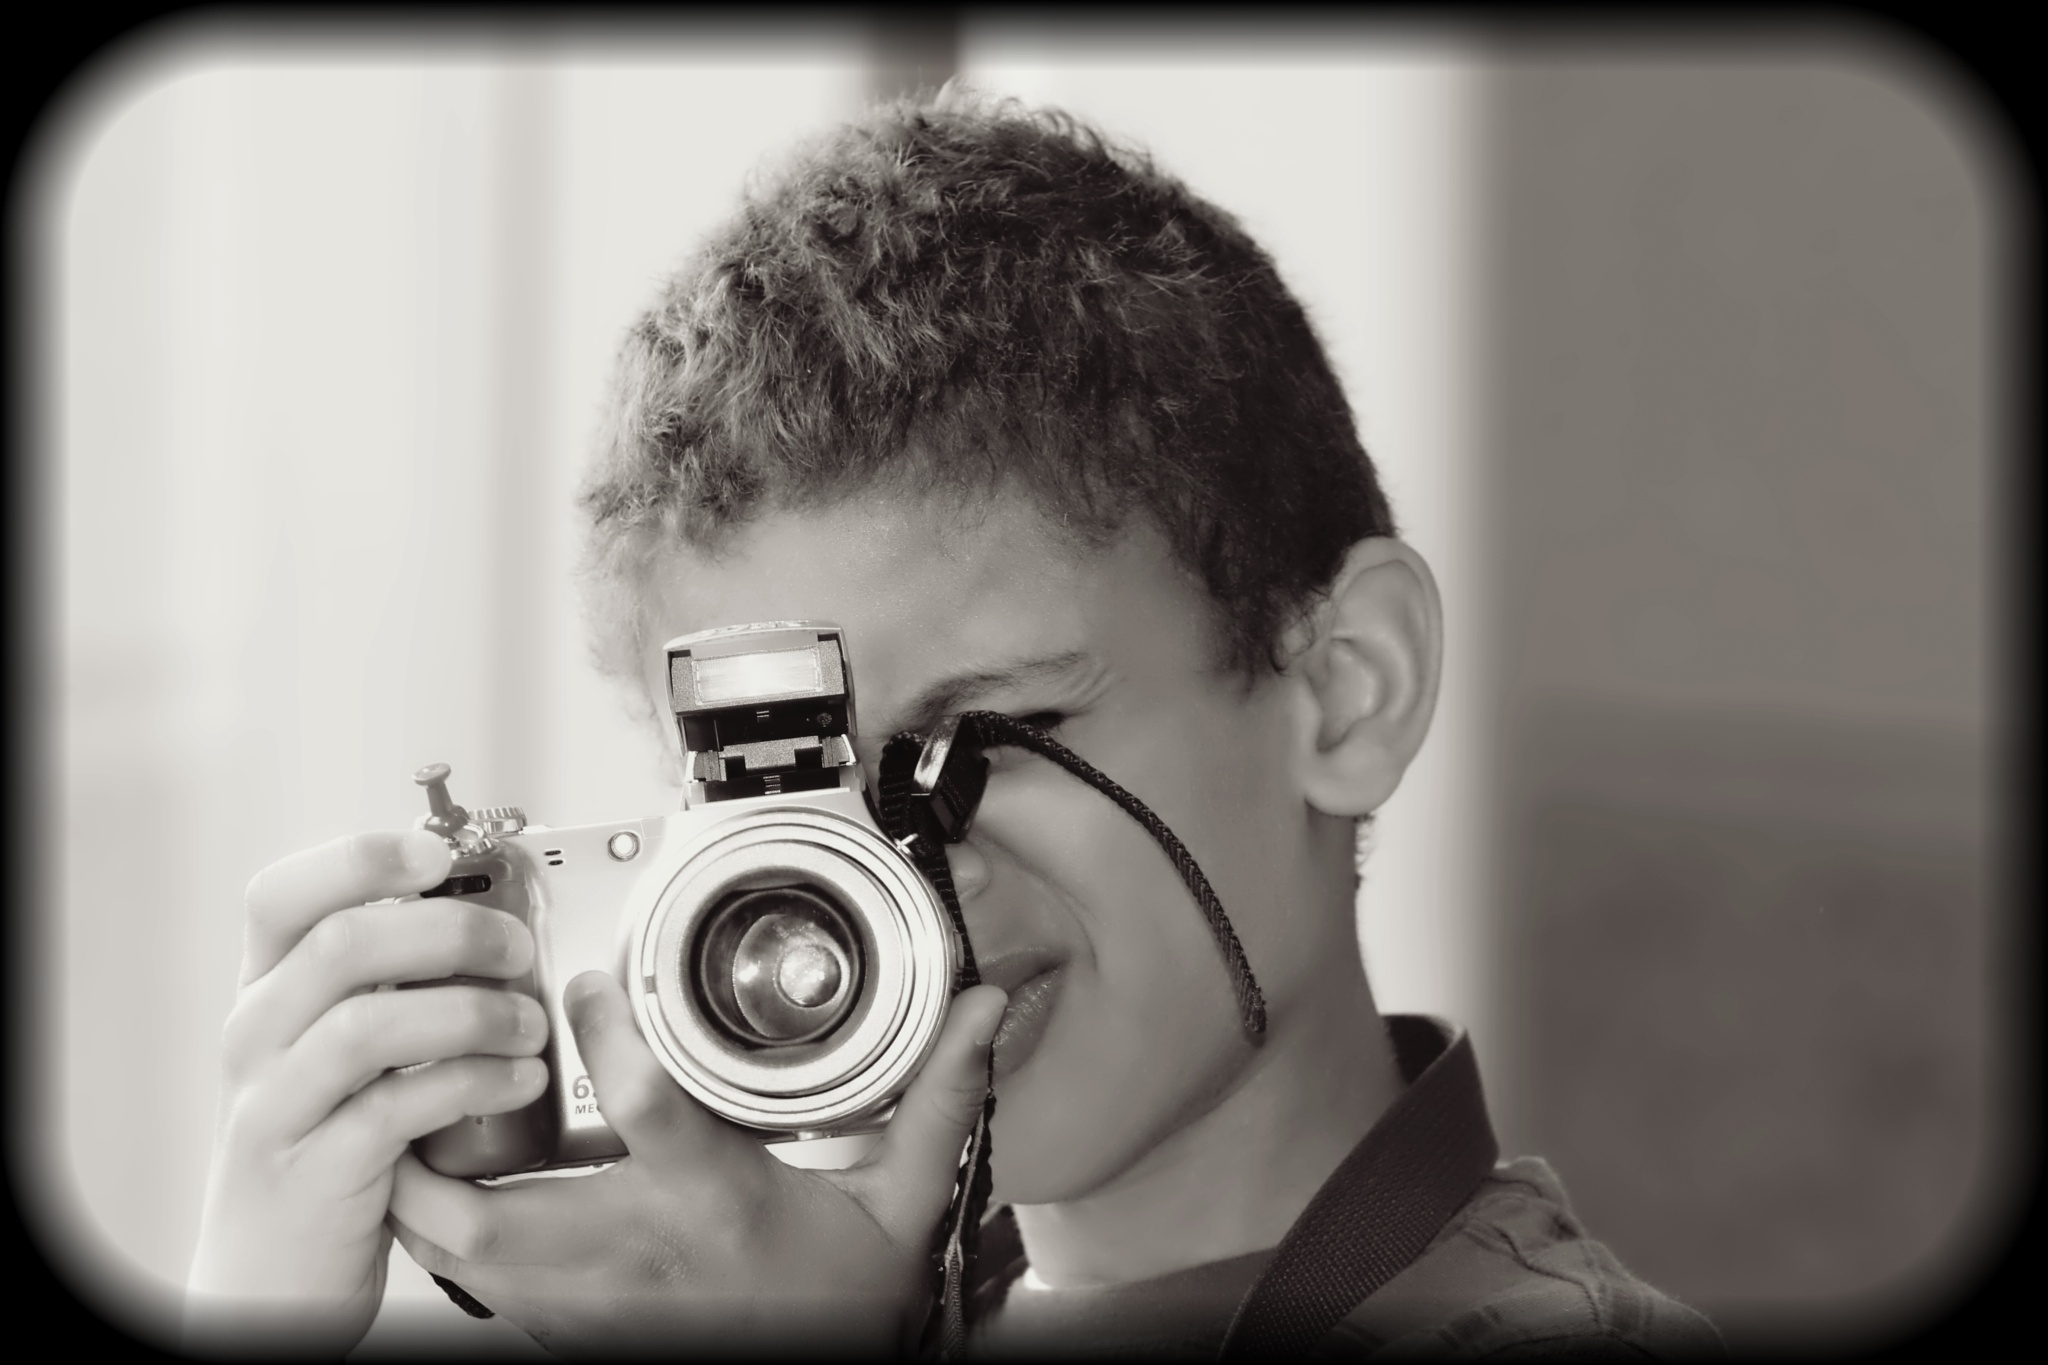 Young photographer by prterrero92